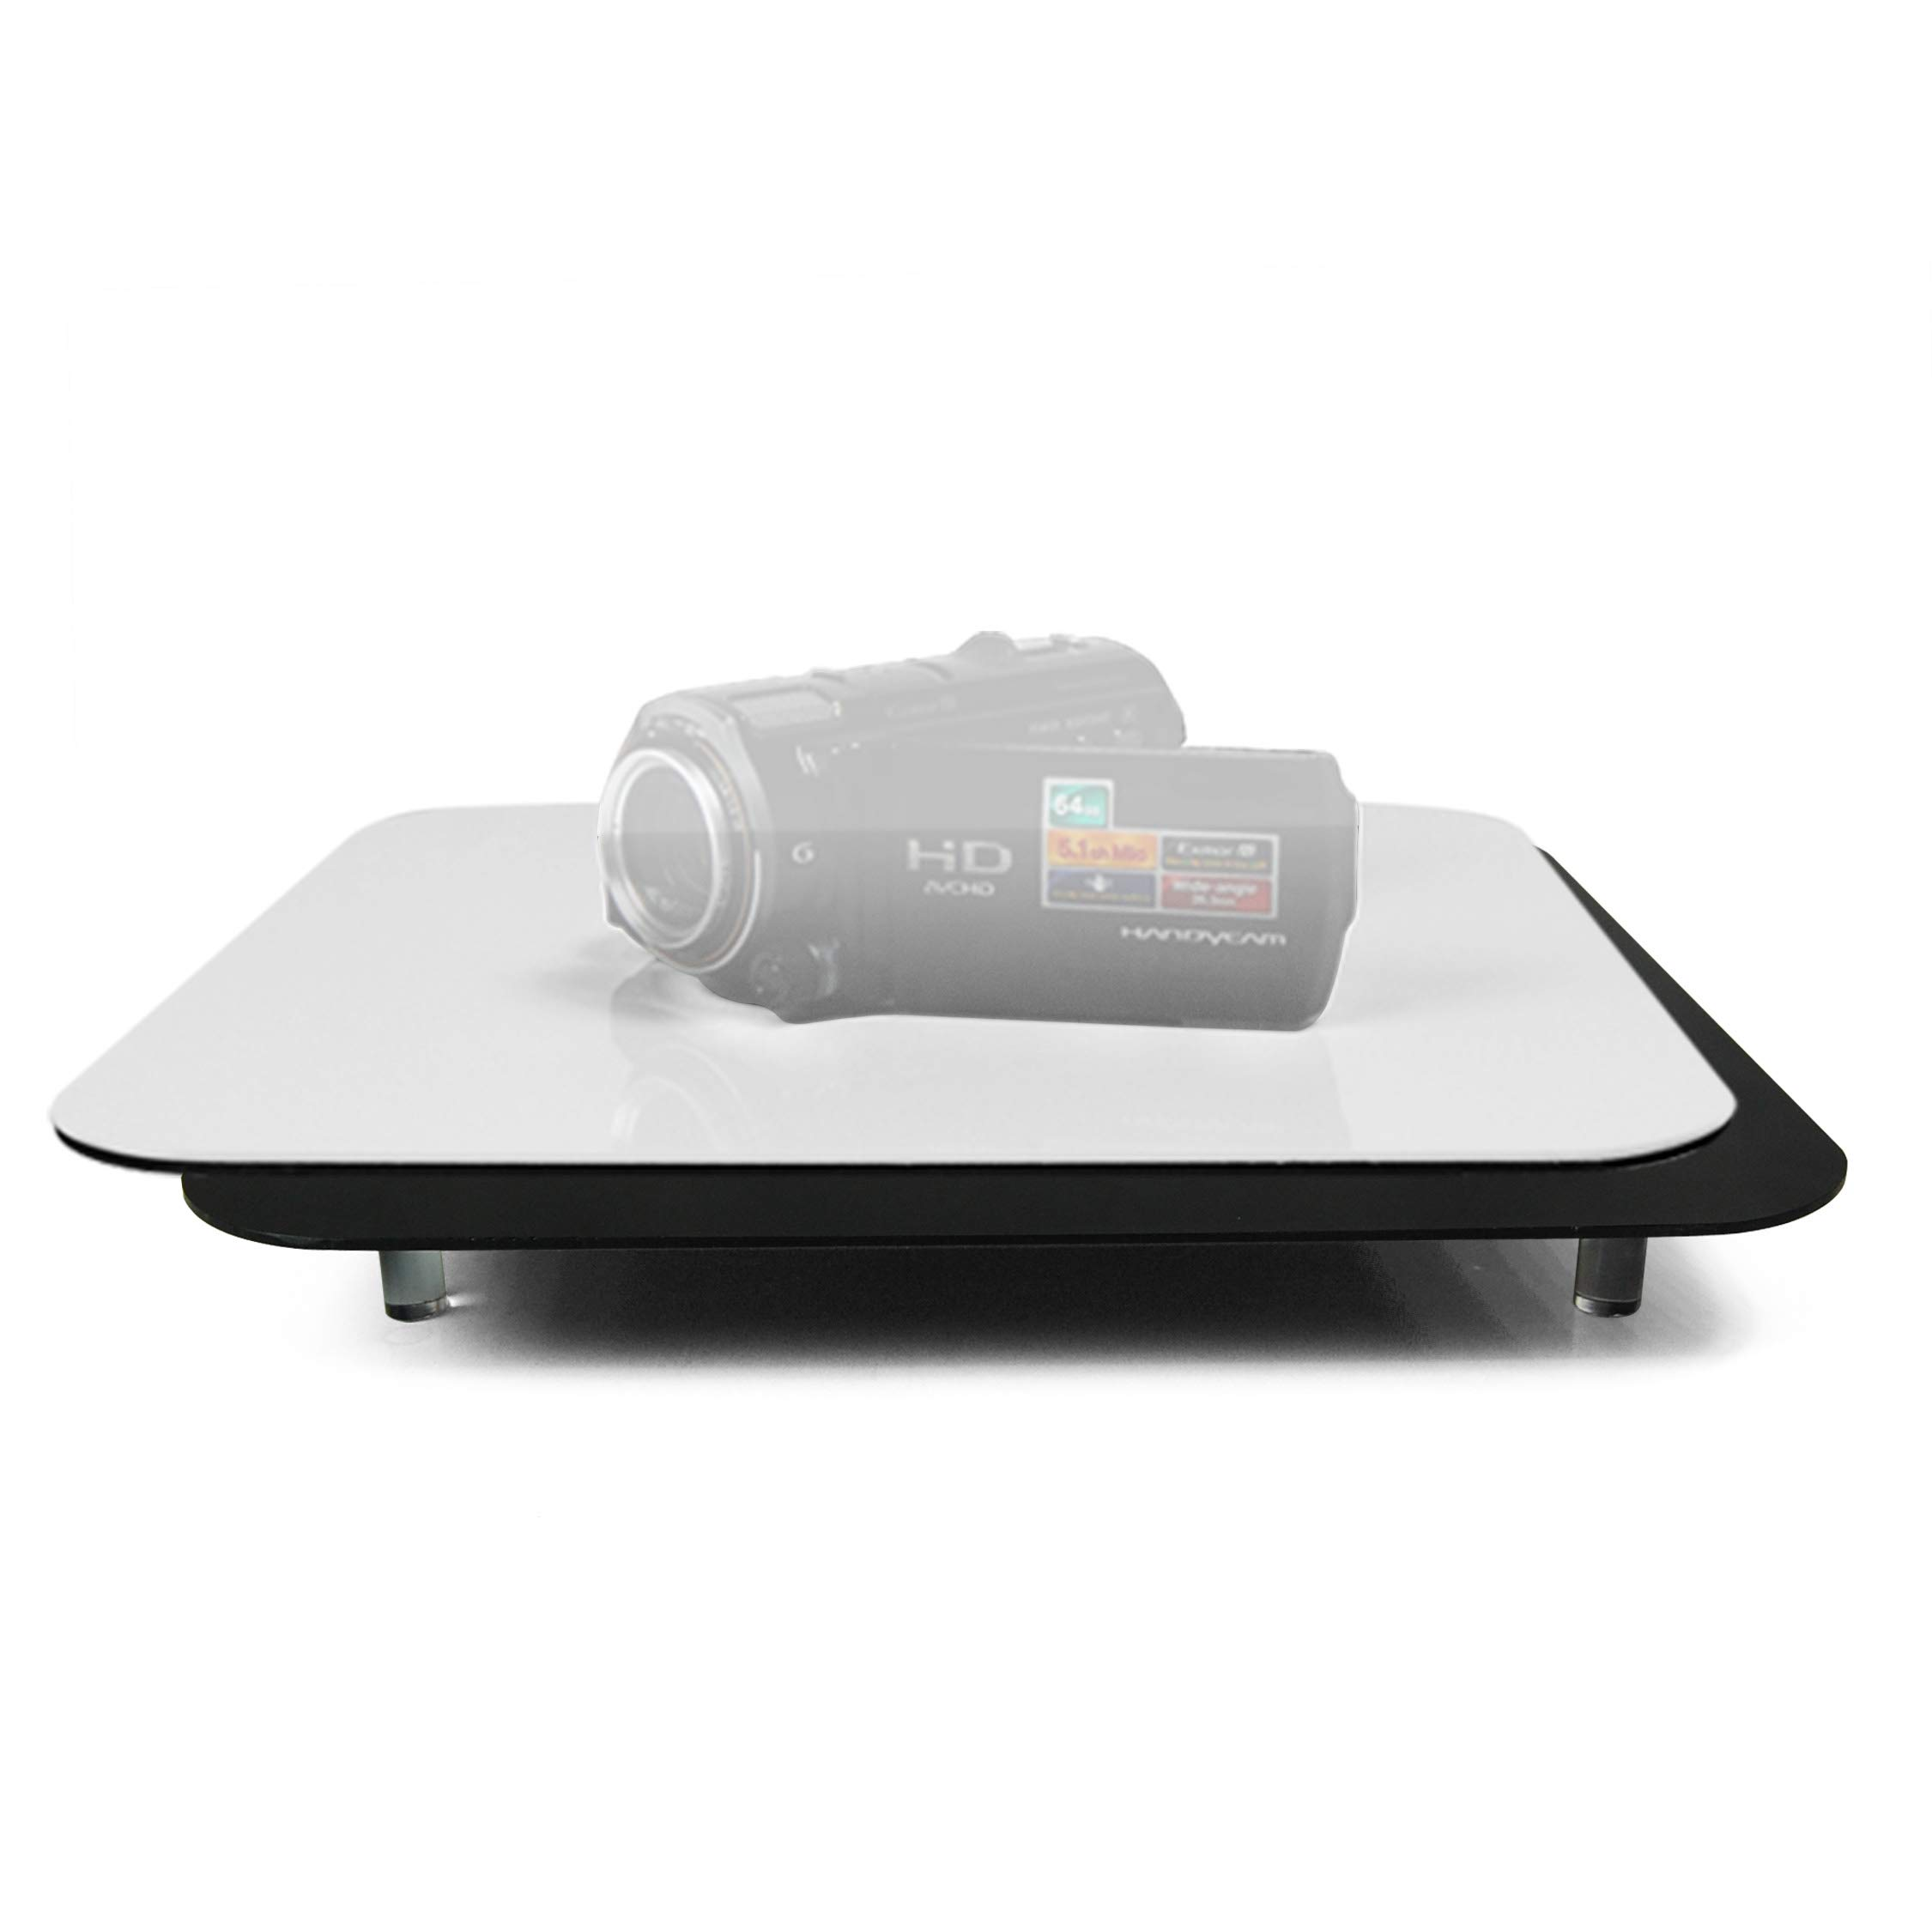 LimoStudio Acrylic Black & White Reflective Display Table Riser for Product Table Top Photography, AGG835 by LimoStudio